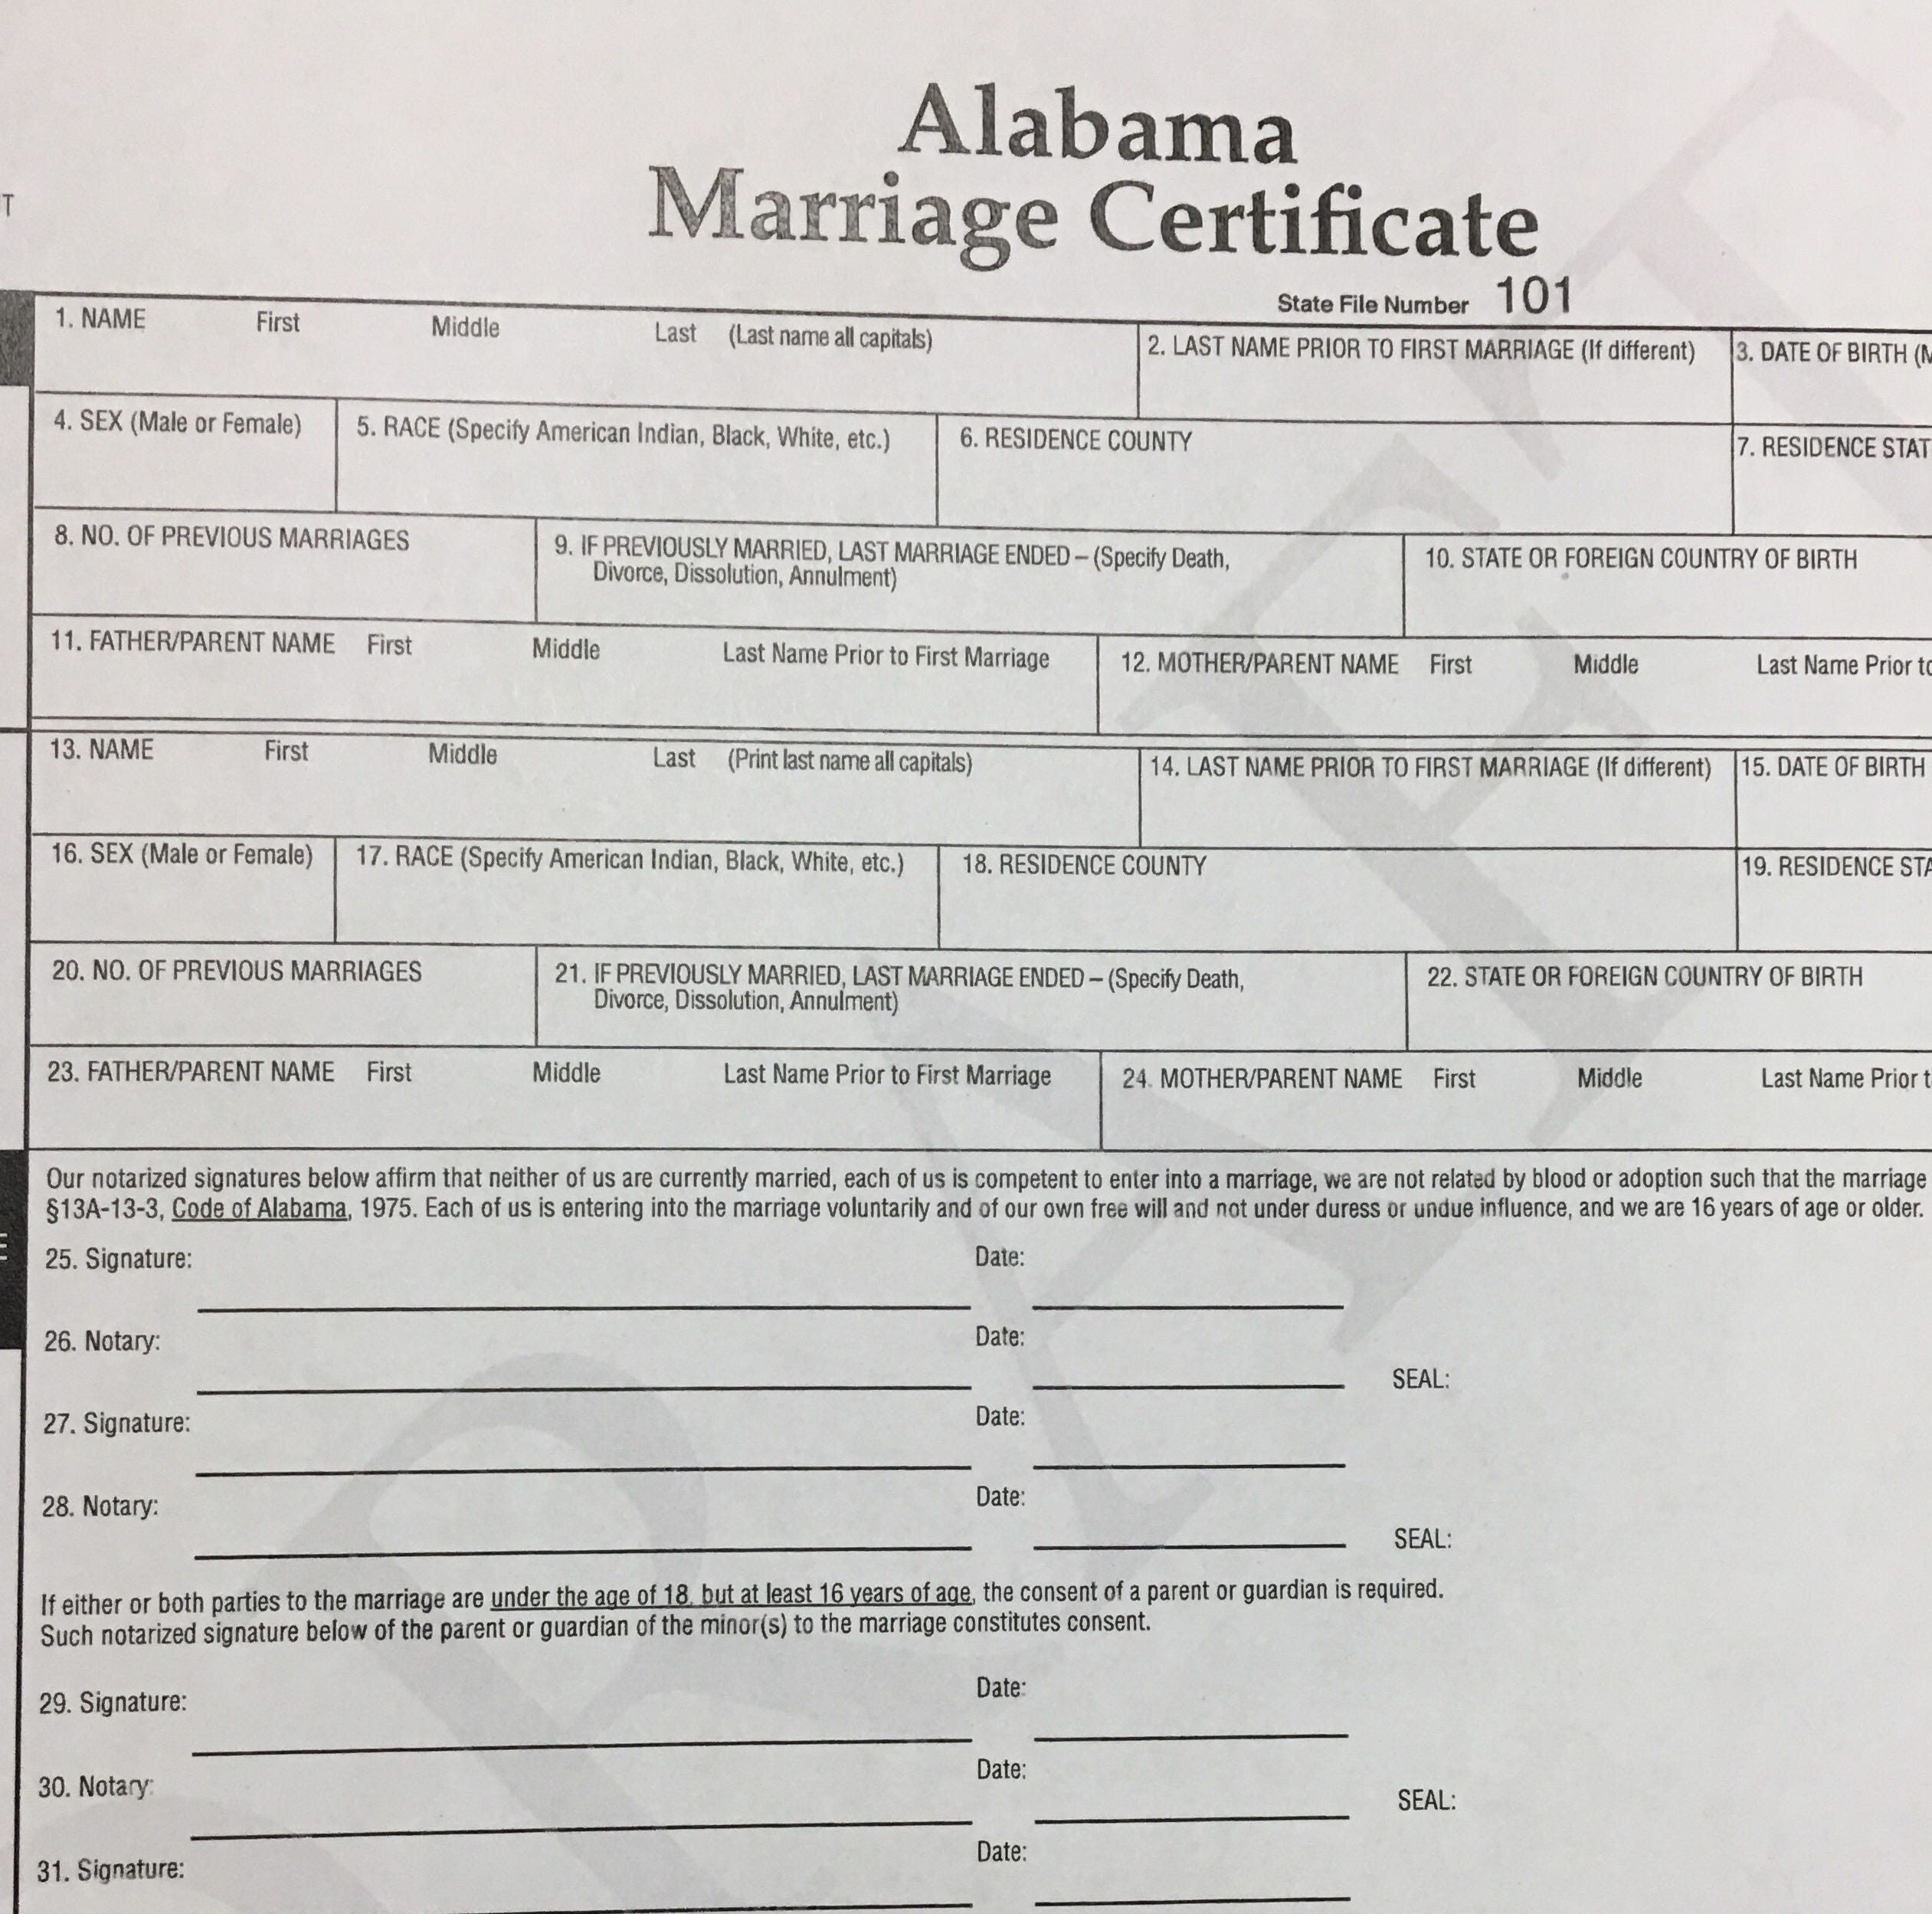 House committee approves bill ending marriage licenses in Alabama